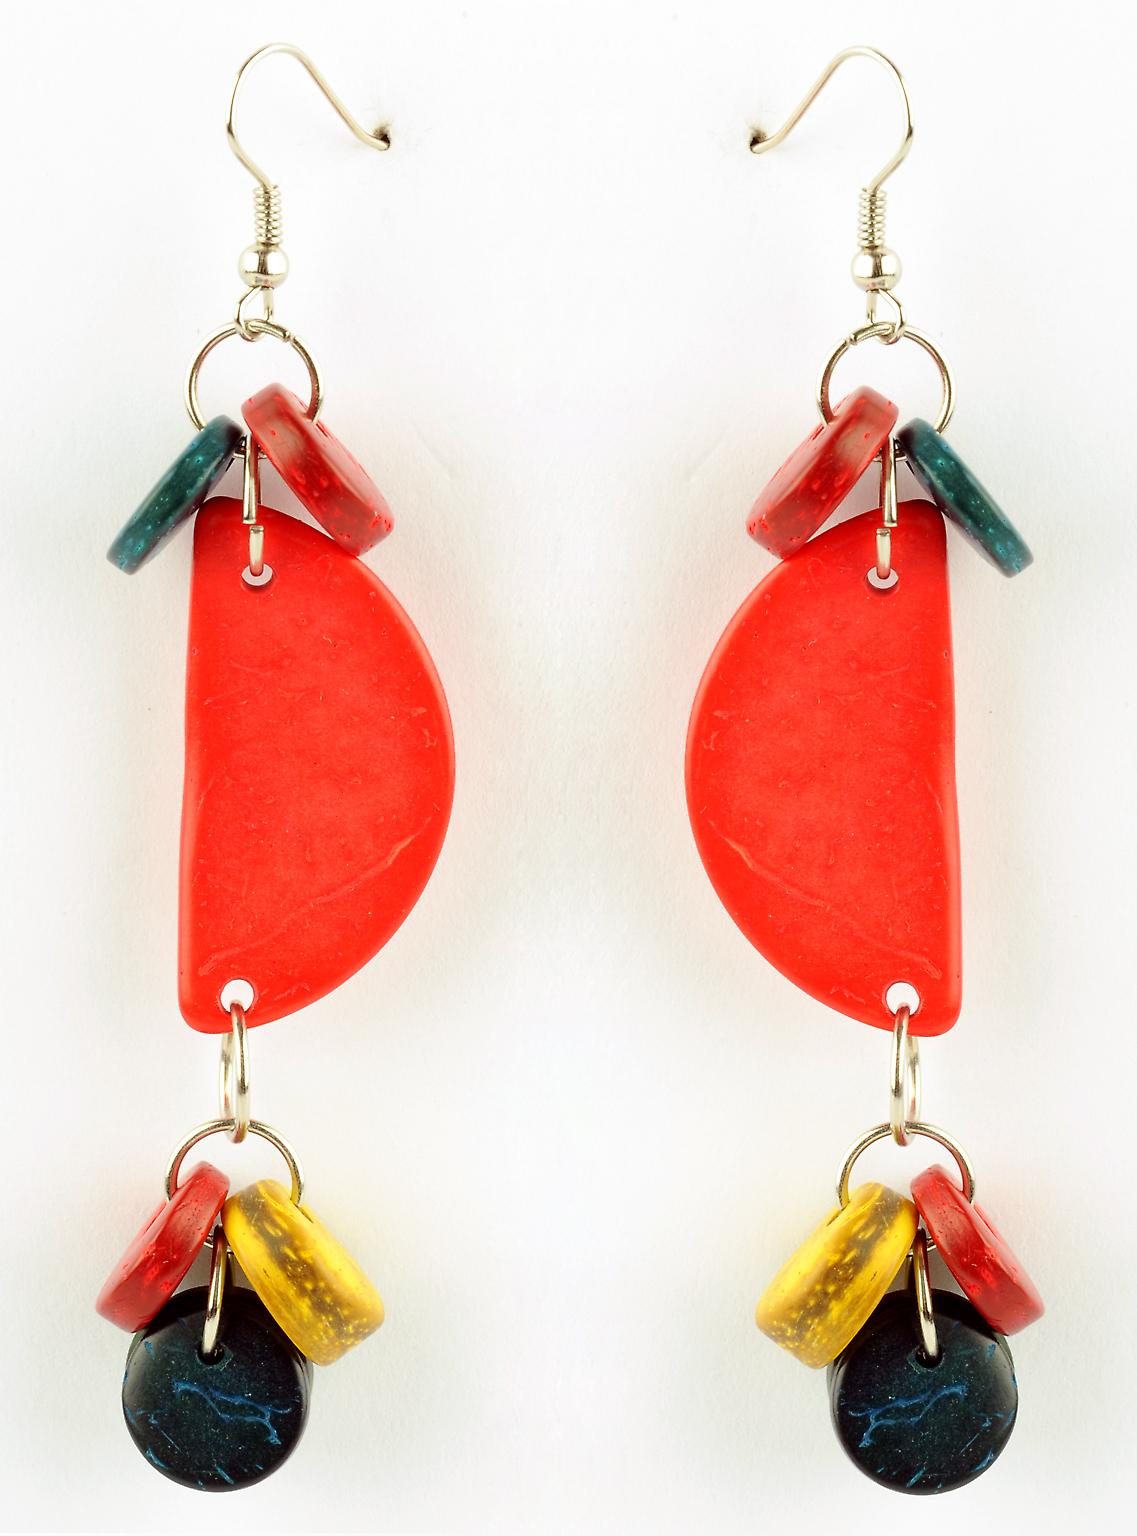 Waooh - Fashion Jewellery - WJ0786 - of Wood Earrings Coco Red Blue Green Yellow - Metal Frame Colour